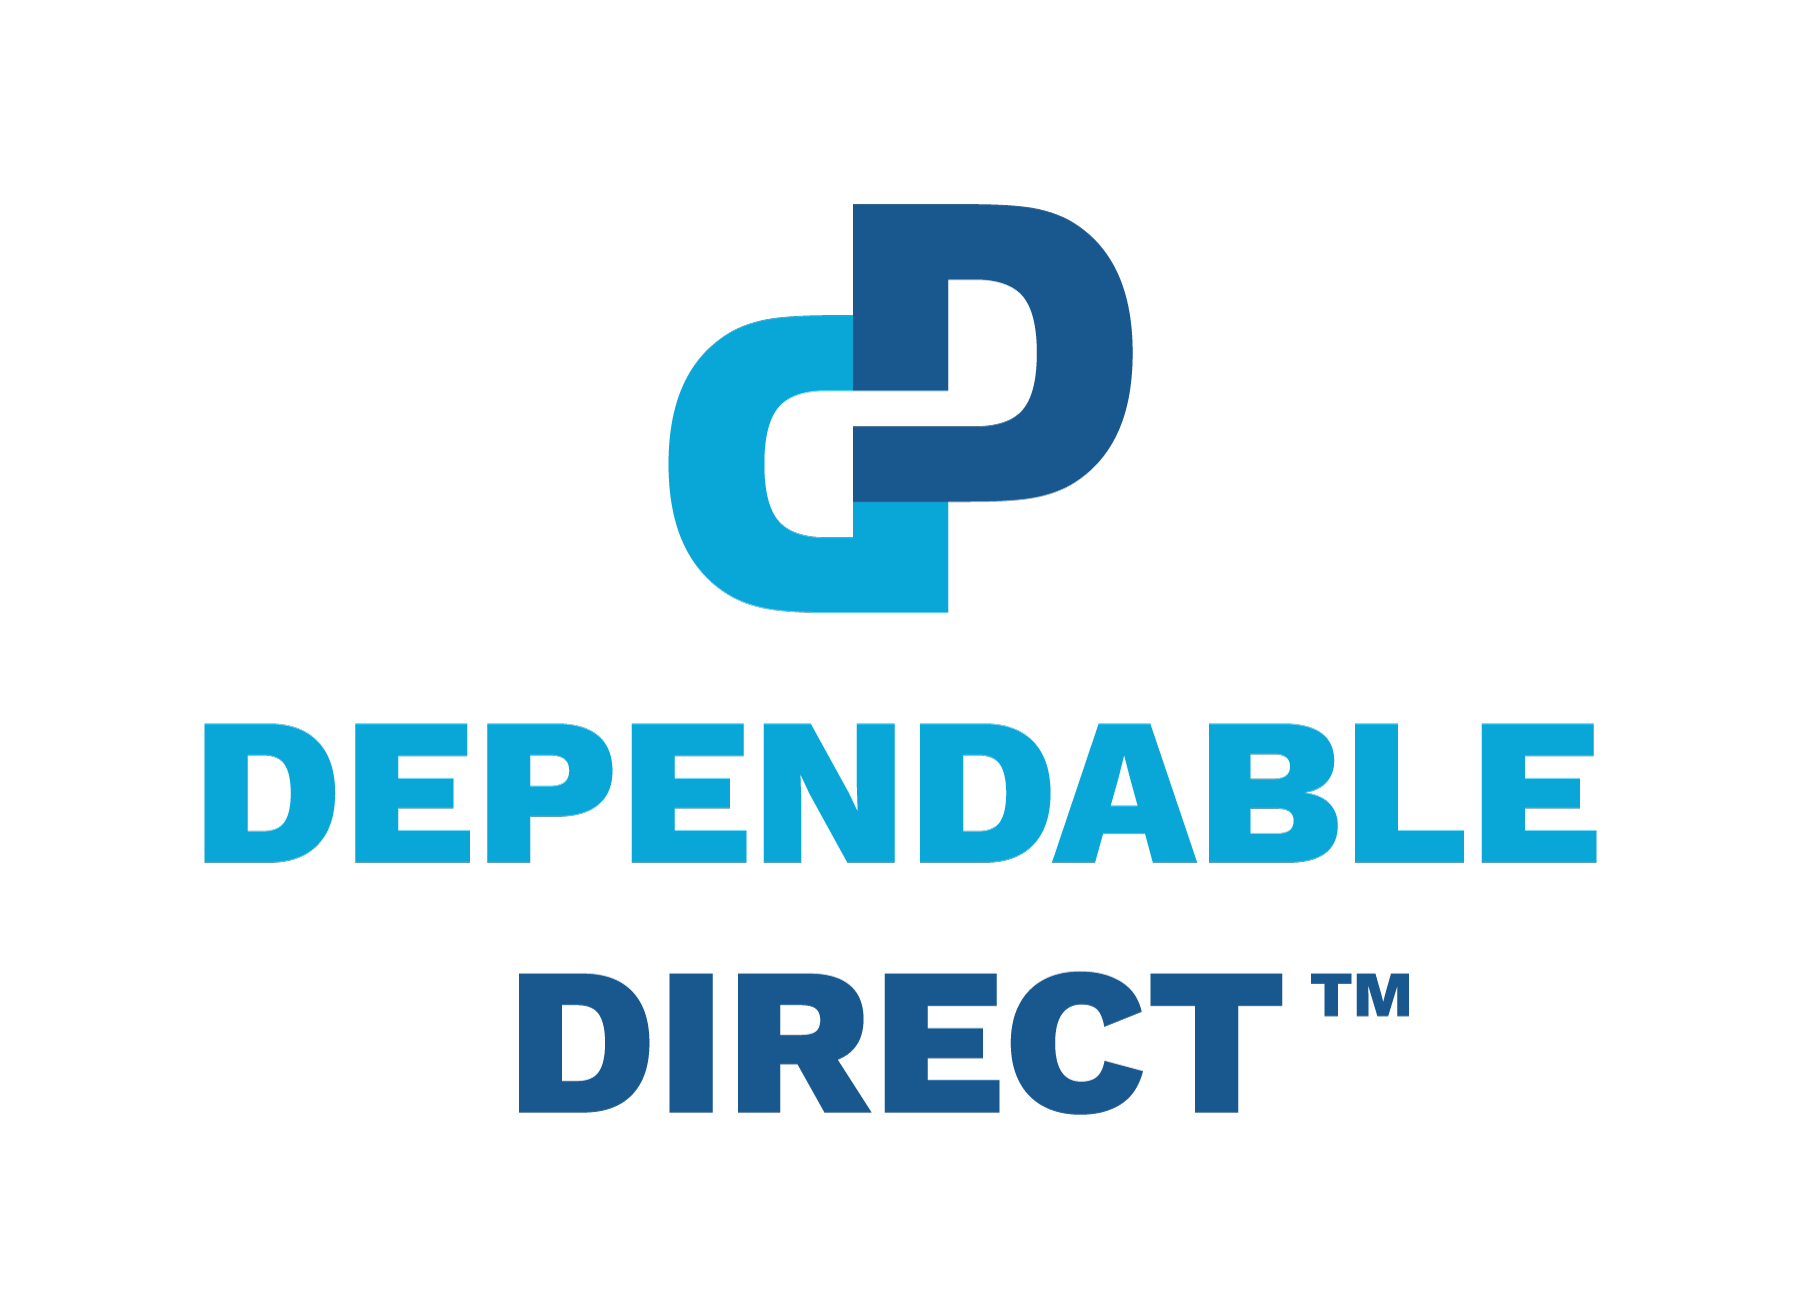 Dependable Direct